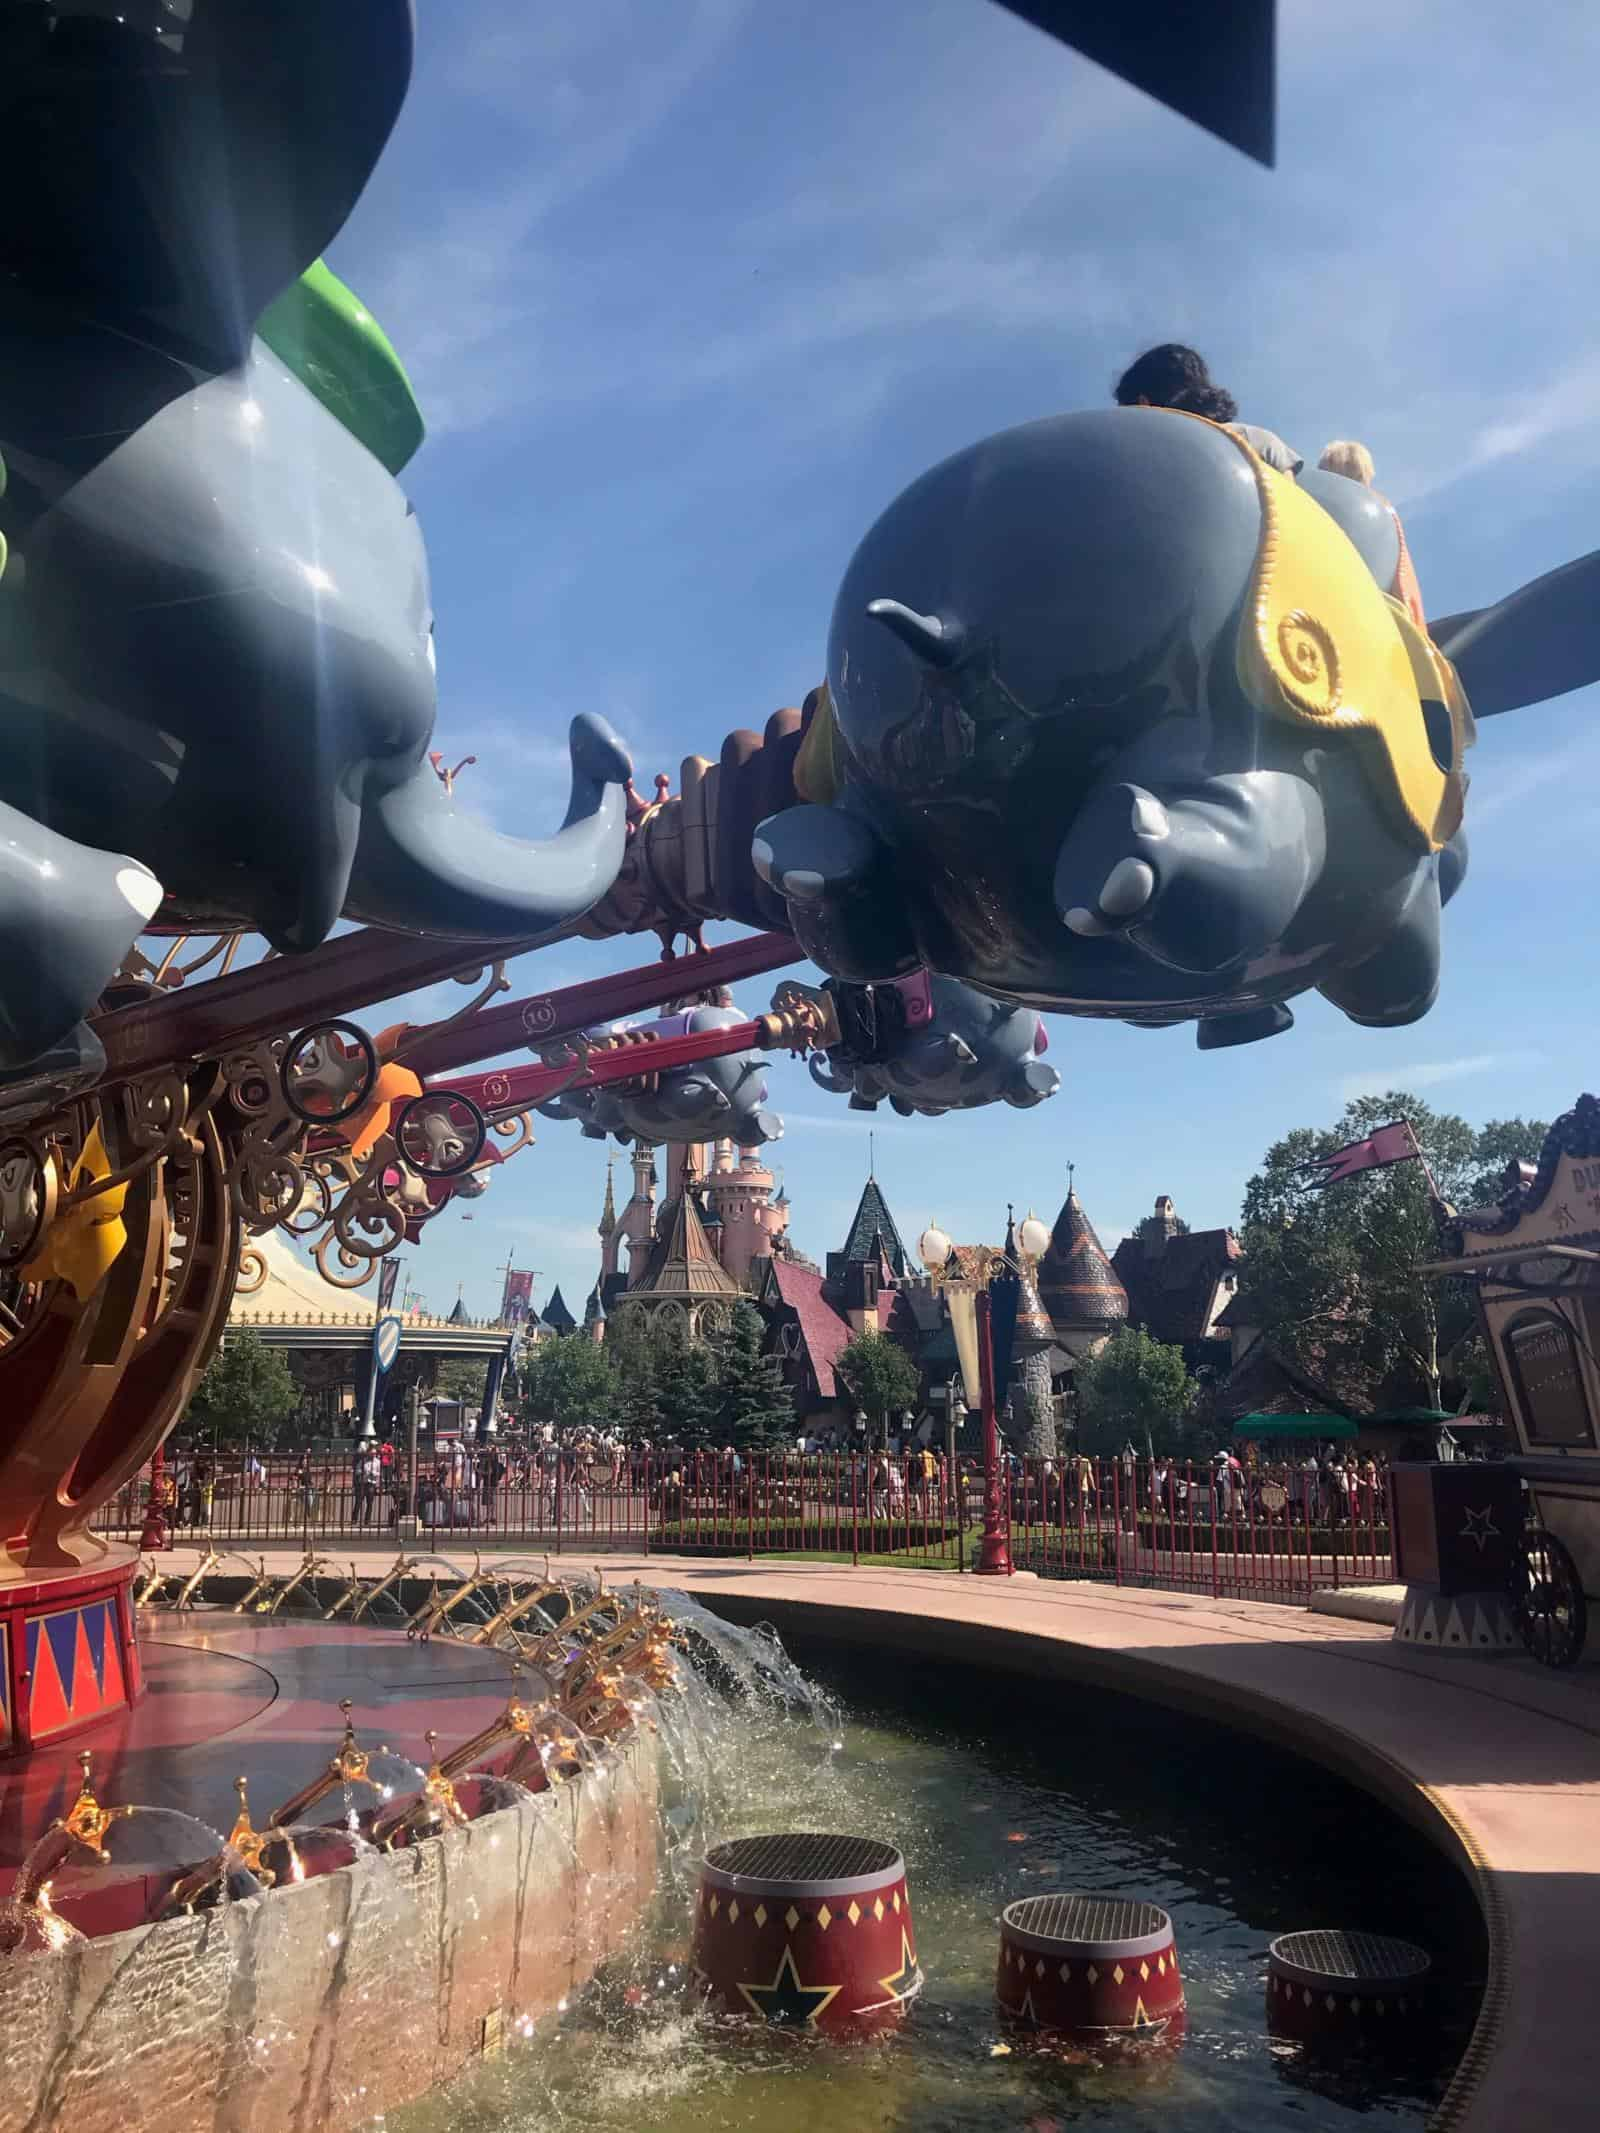 Disneyland Paris with toddlers and baby tips - why dumbo is the best disneyland paris rides for toddlers